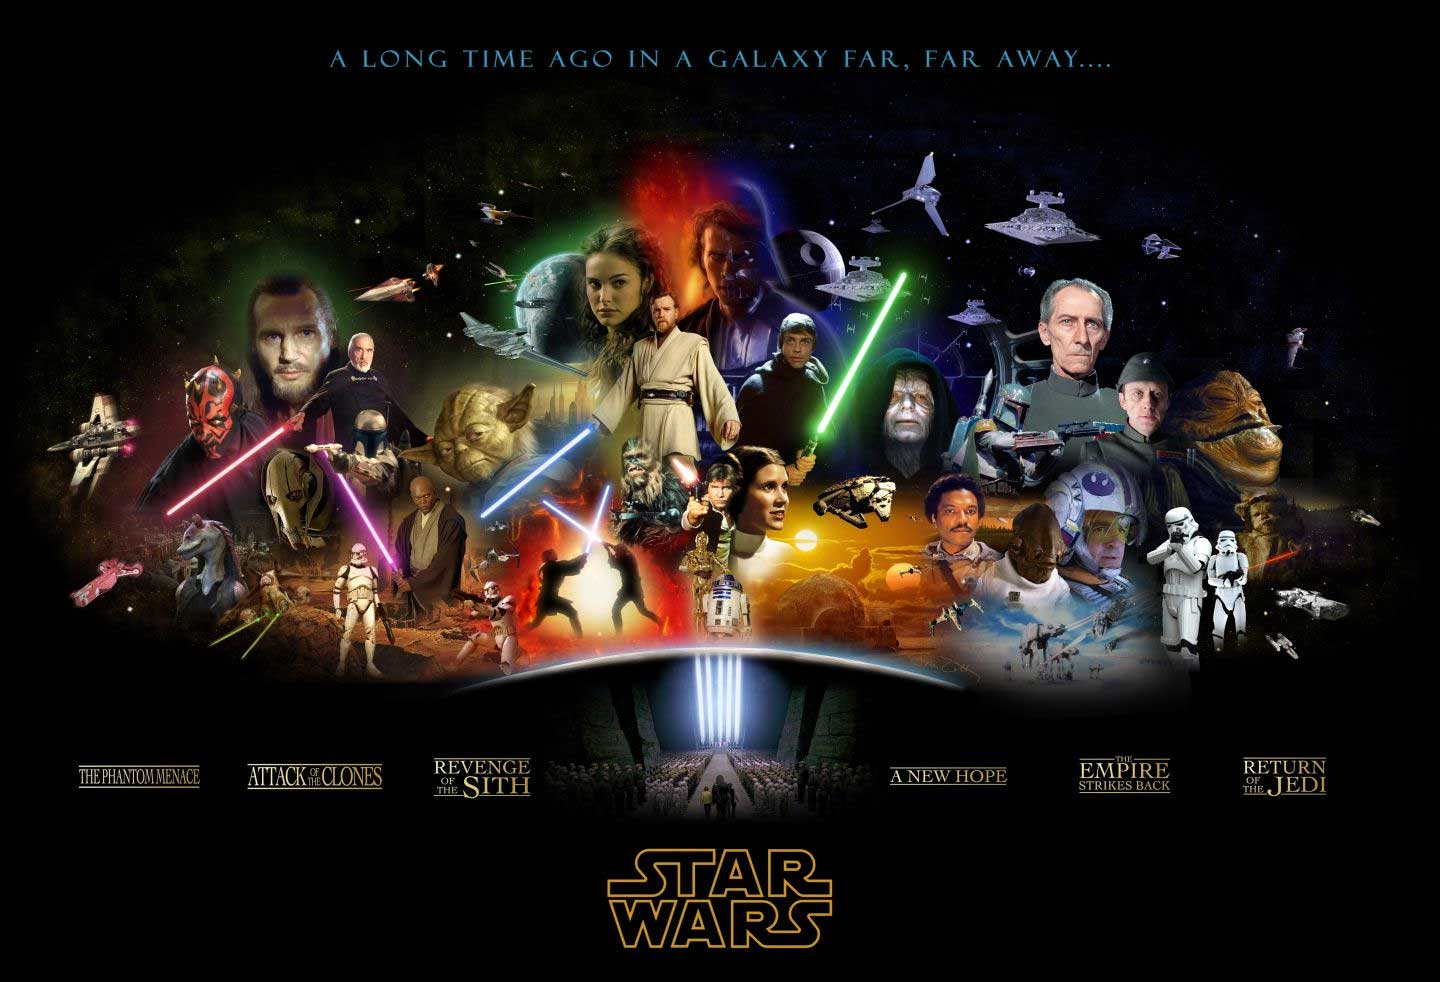 Star Wars: The Clone Wars is an American 3D CGI animated television series created by Lucasfilm Animation, Lucasfilm Animation Singapore and CGCG Inc.